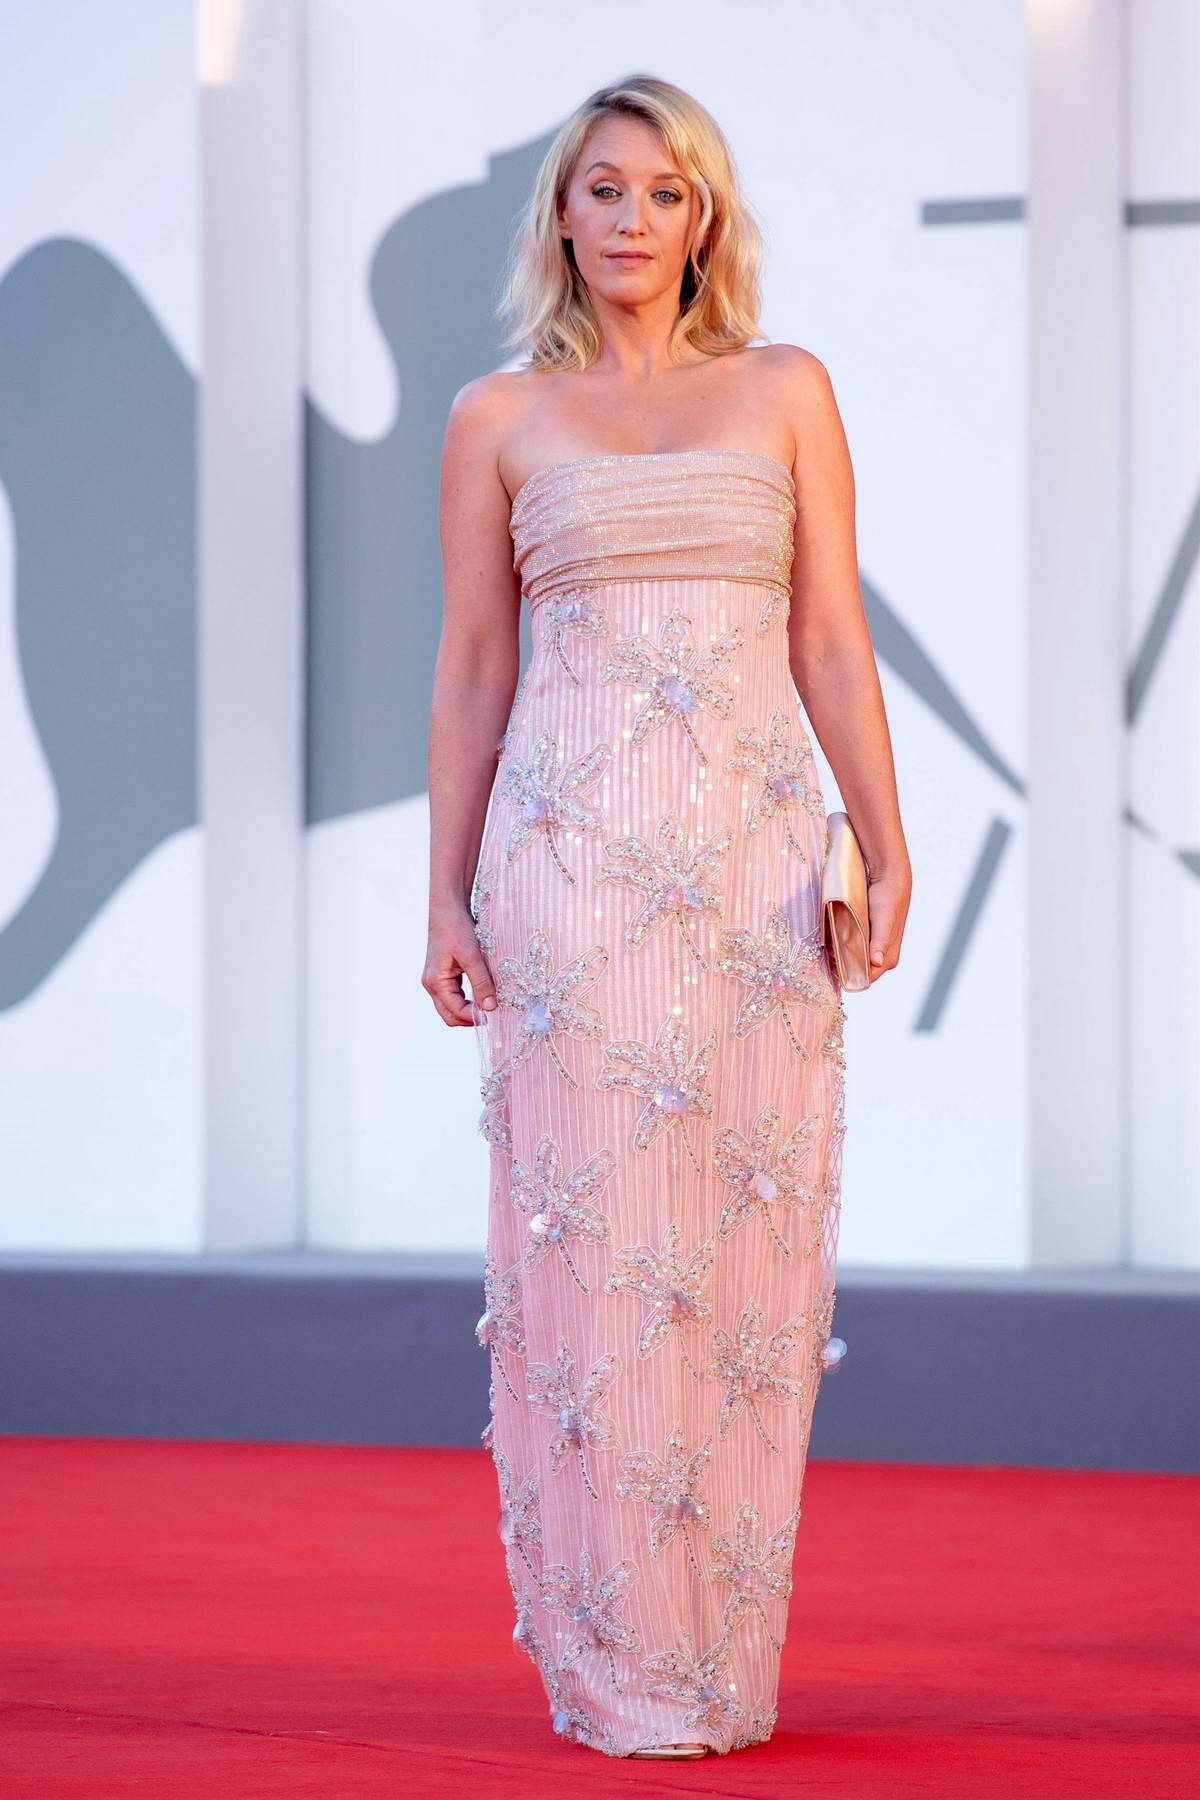 Ludivine Sagnier attends the Premiere of 'The World to Come' during the 77th Venice Film Festival in Venice, Italy